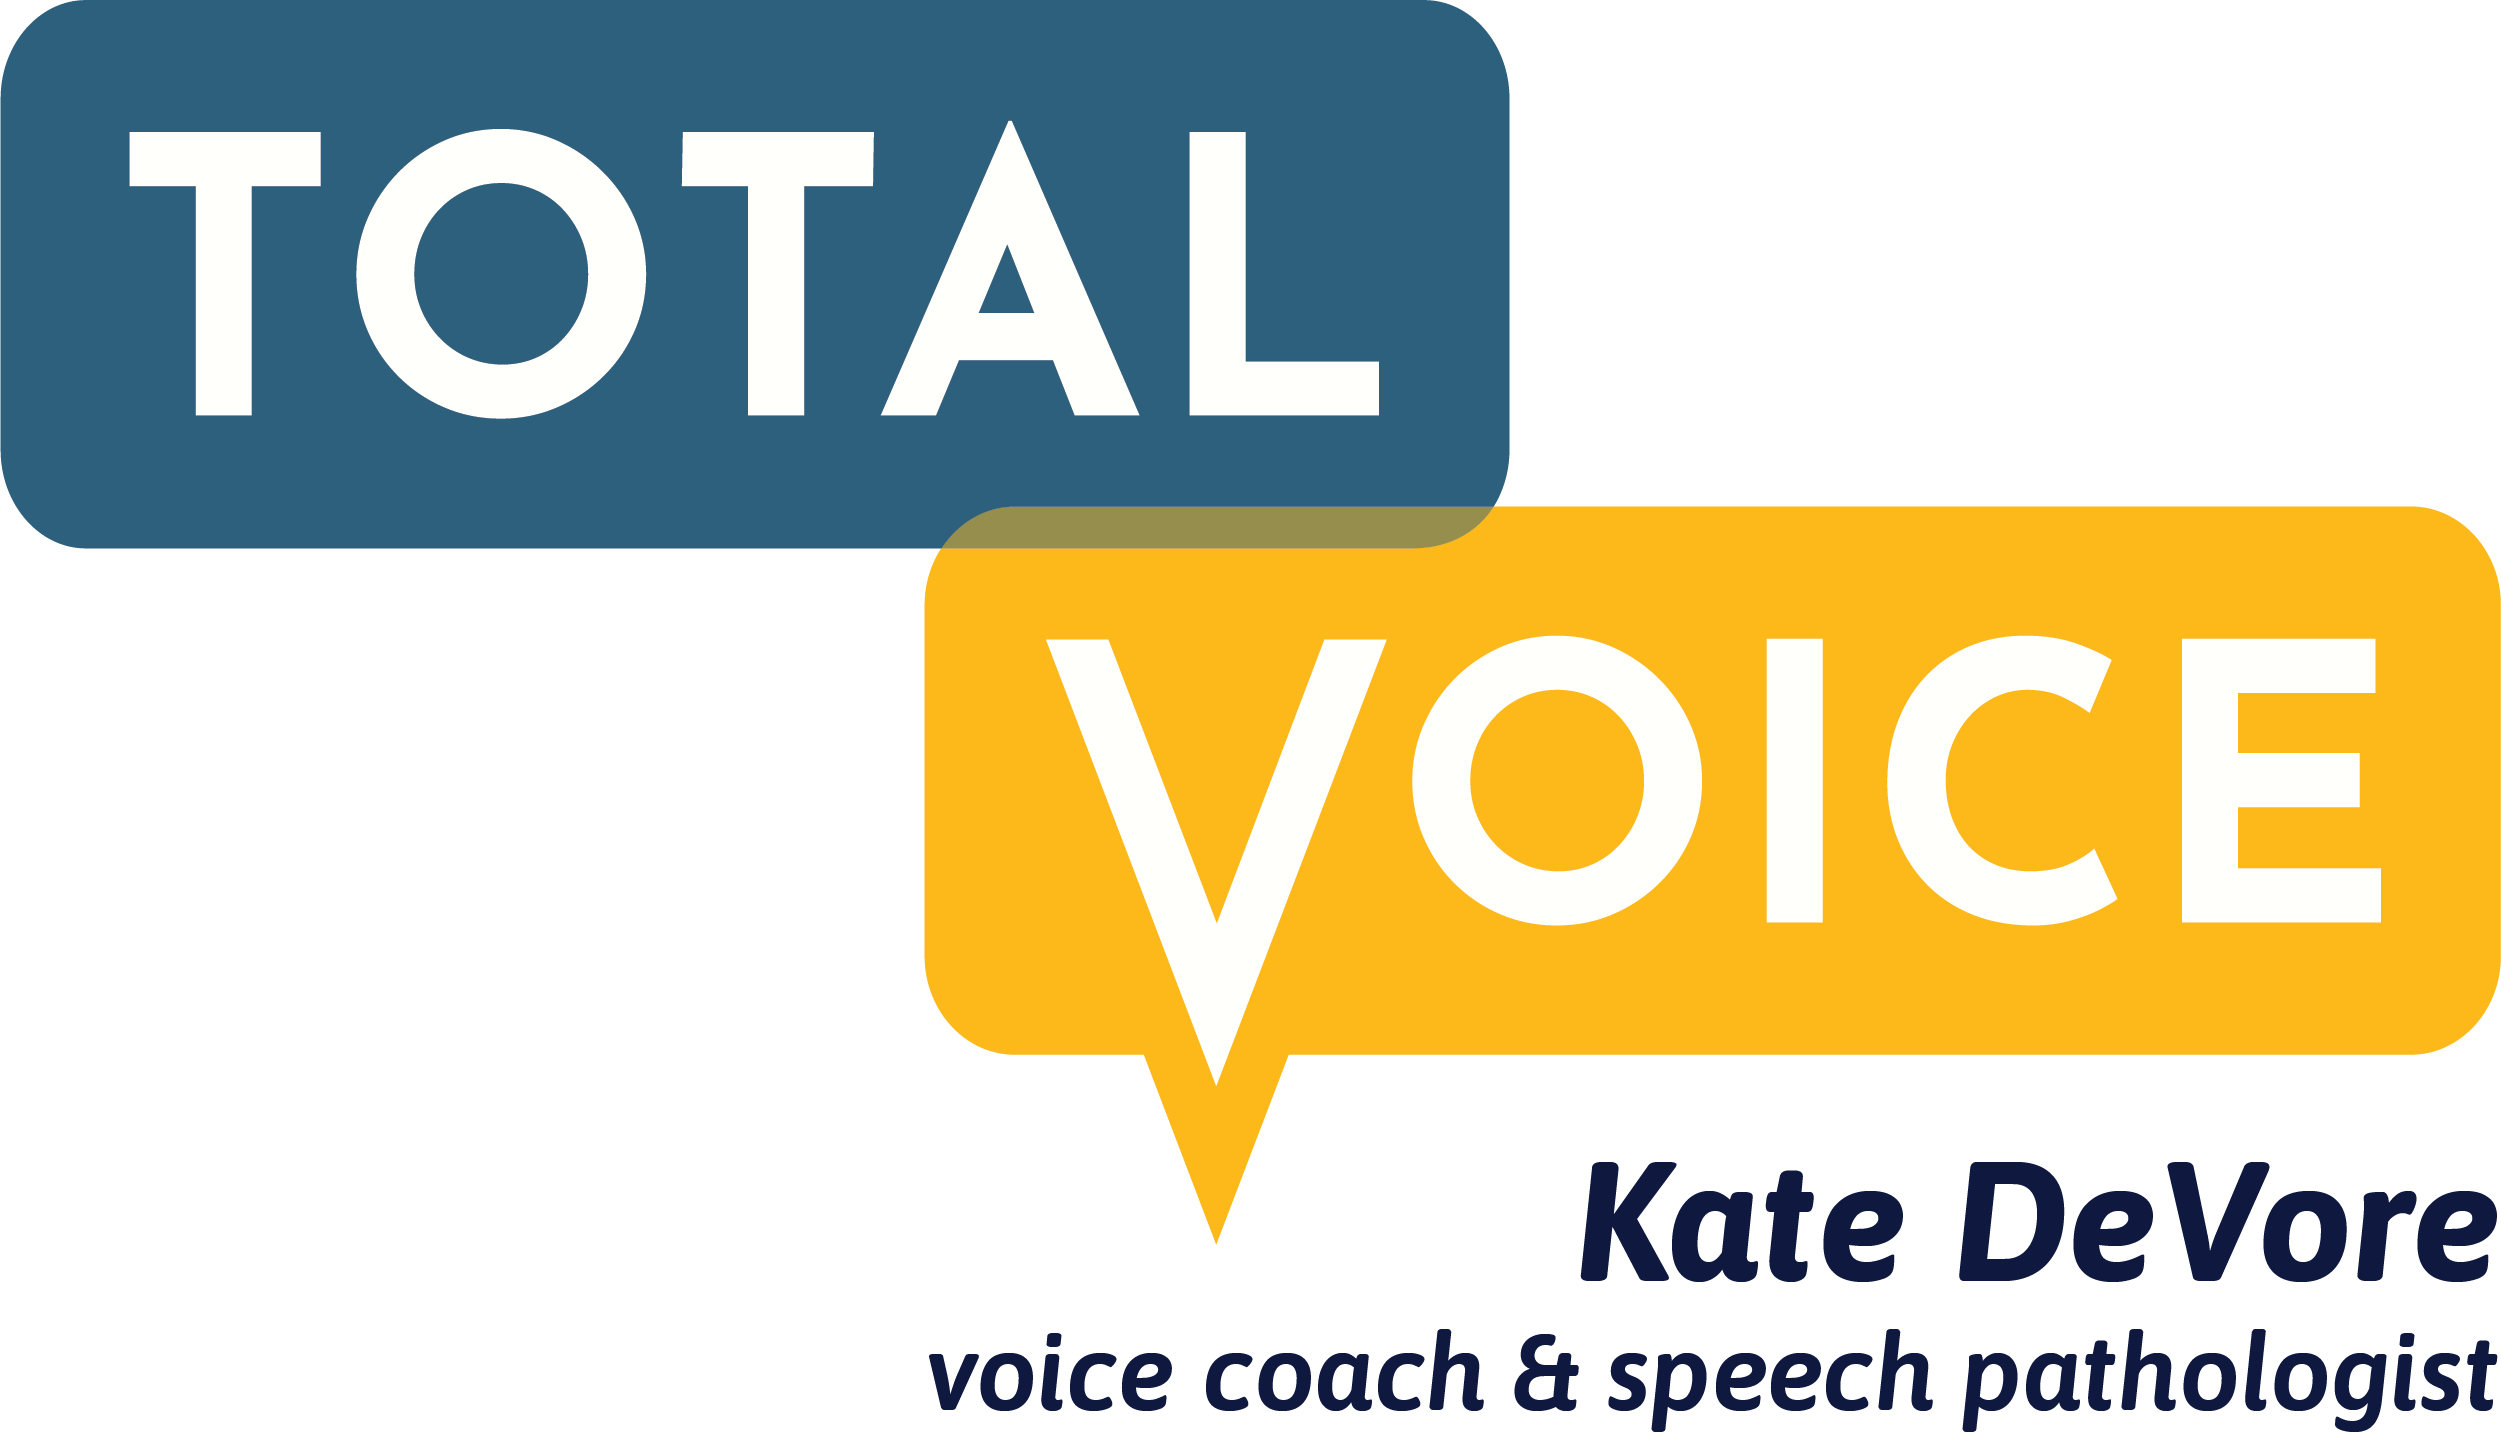 Total Voice